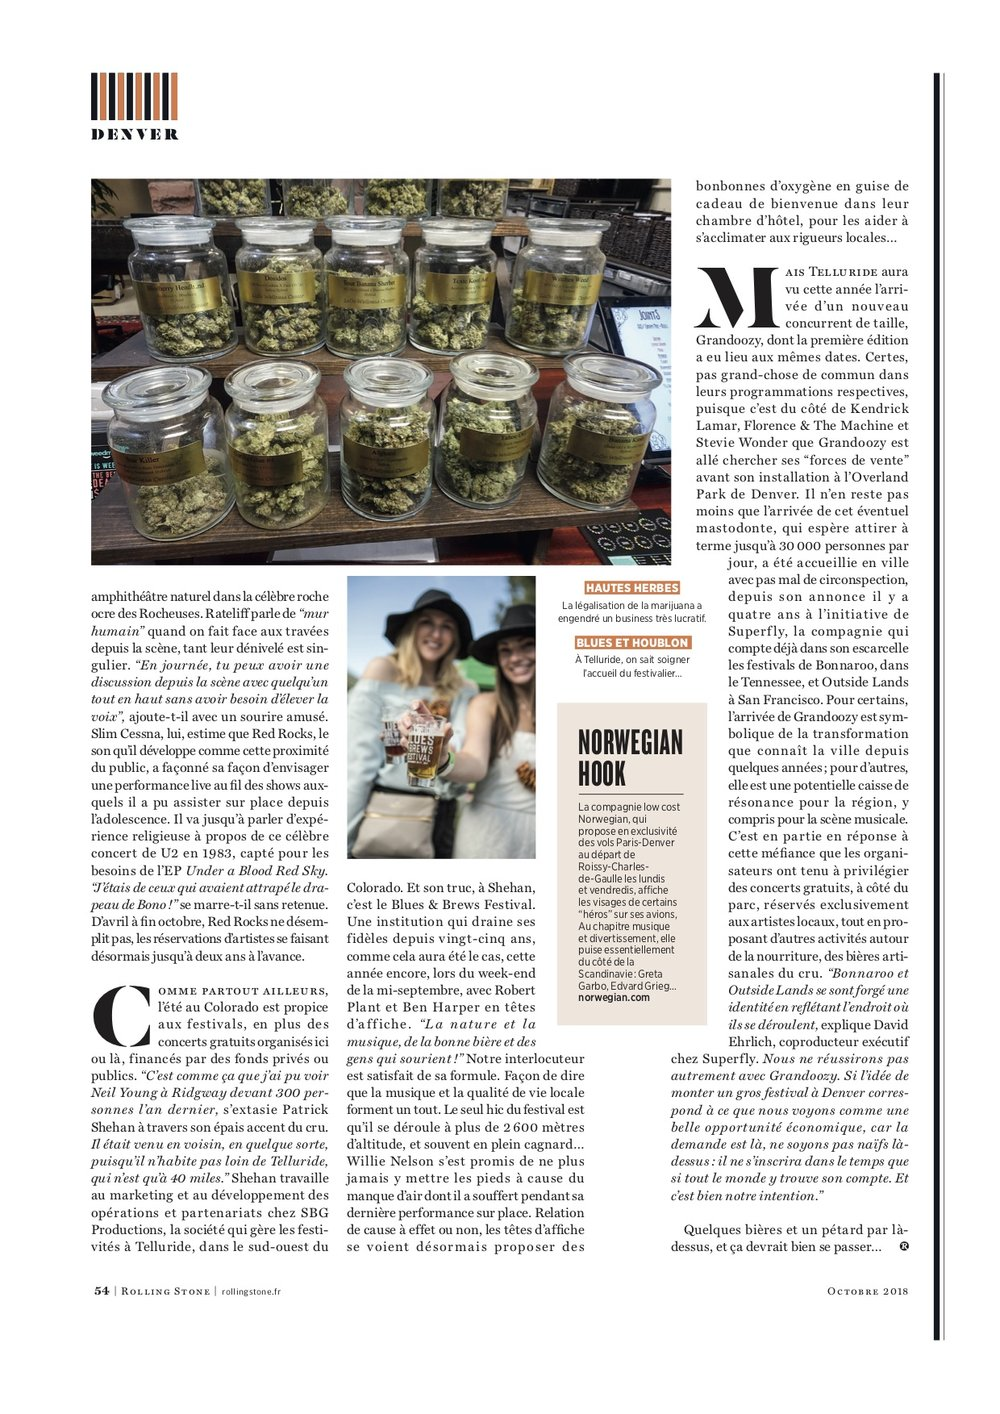 French Rolling Stone Oct 20185.jpg